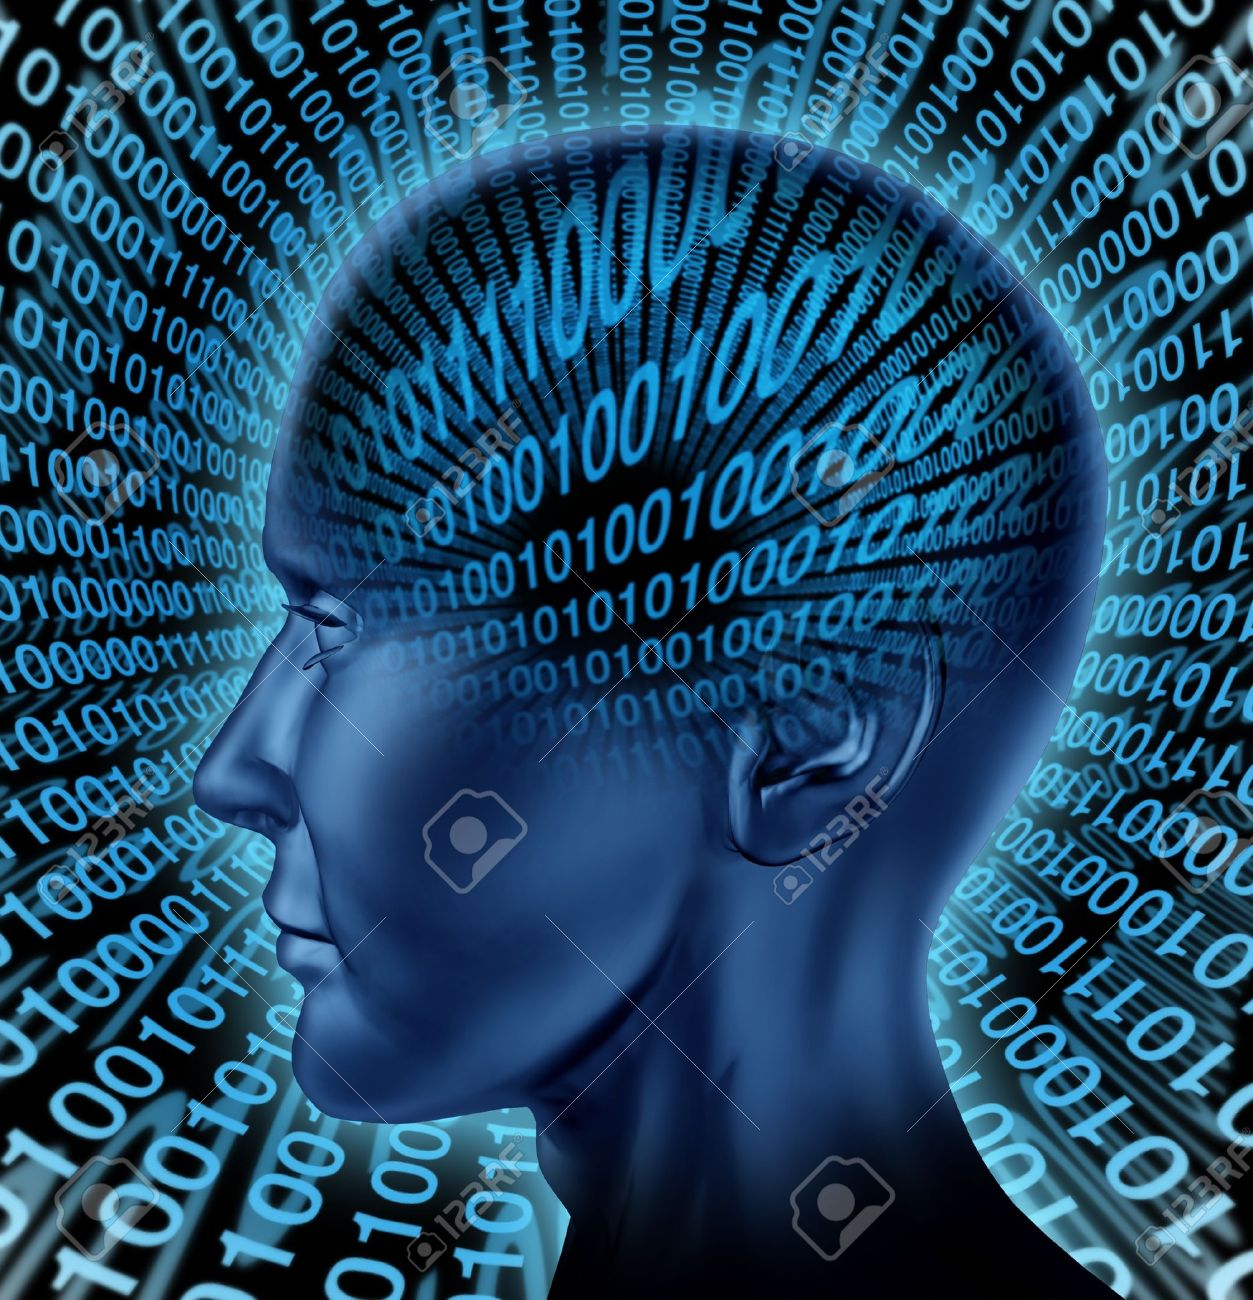 Digital brain intelligence as a technology concept in the age